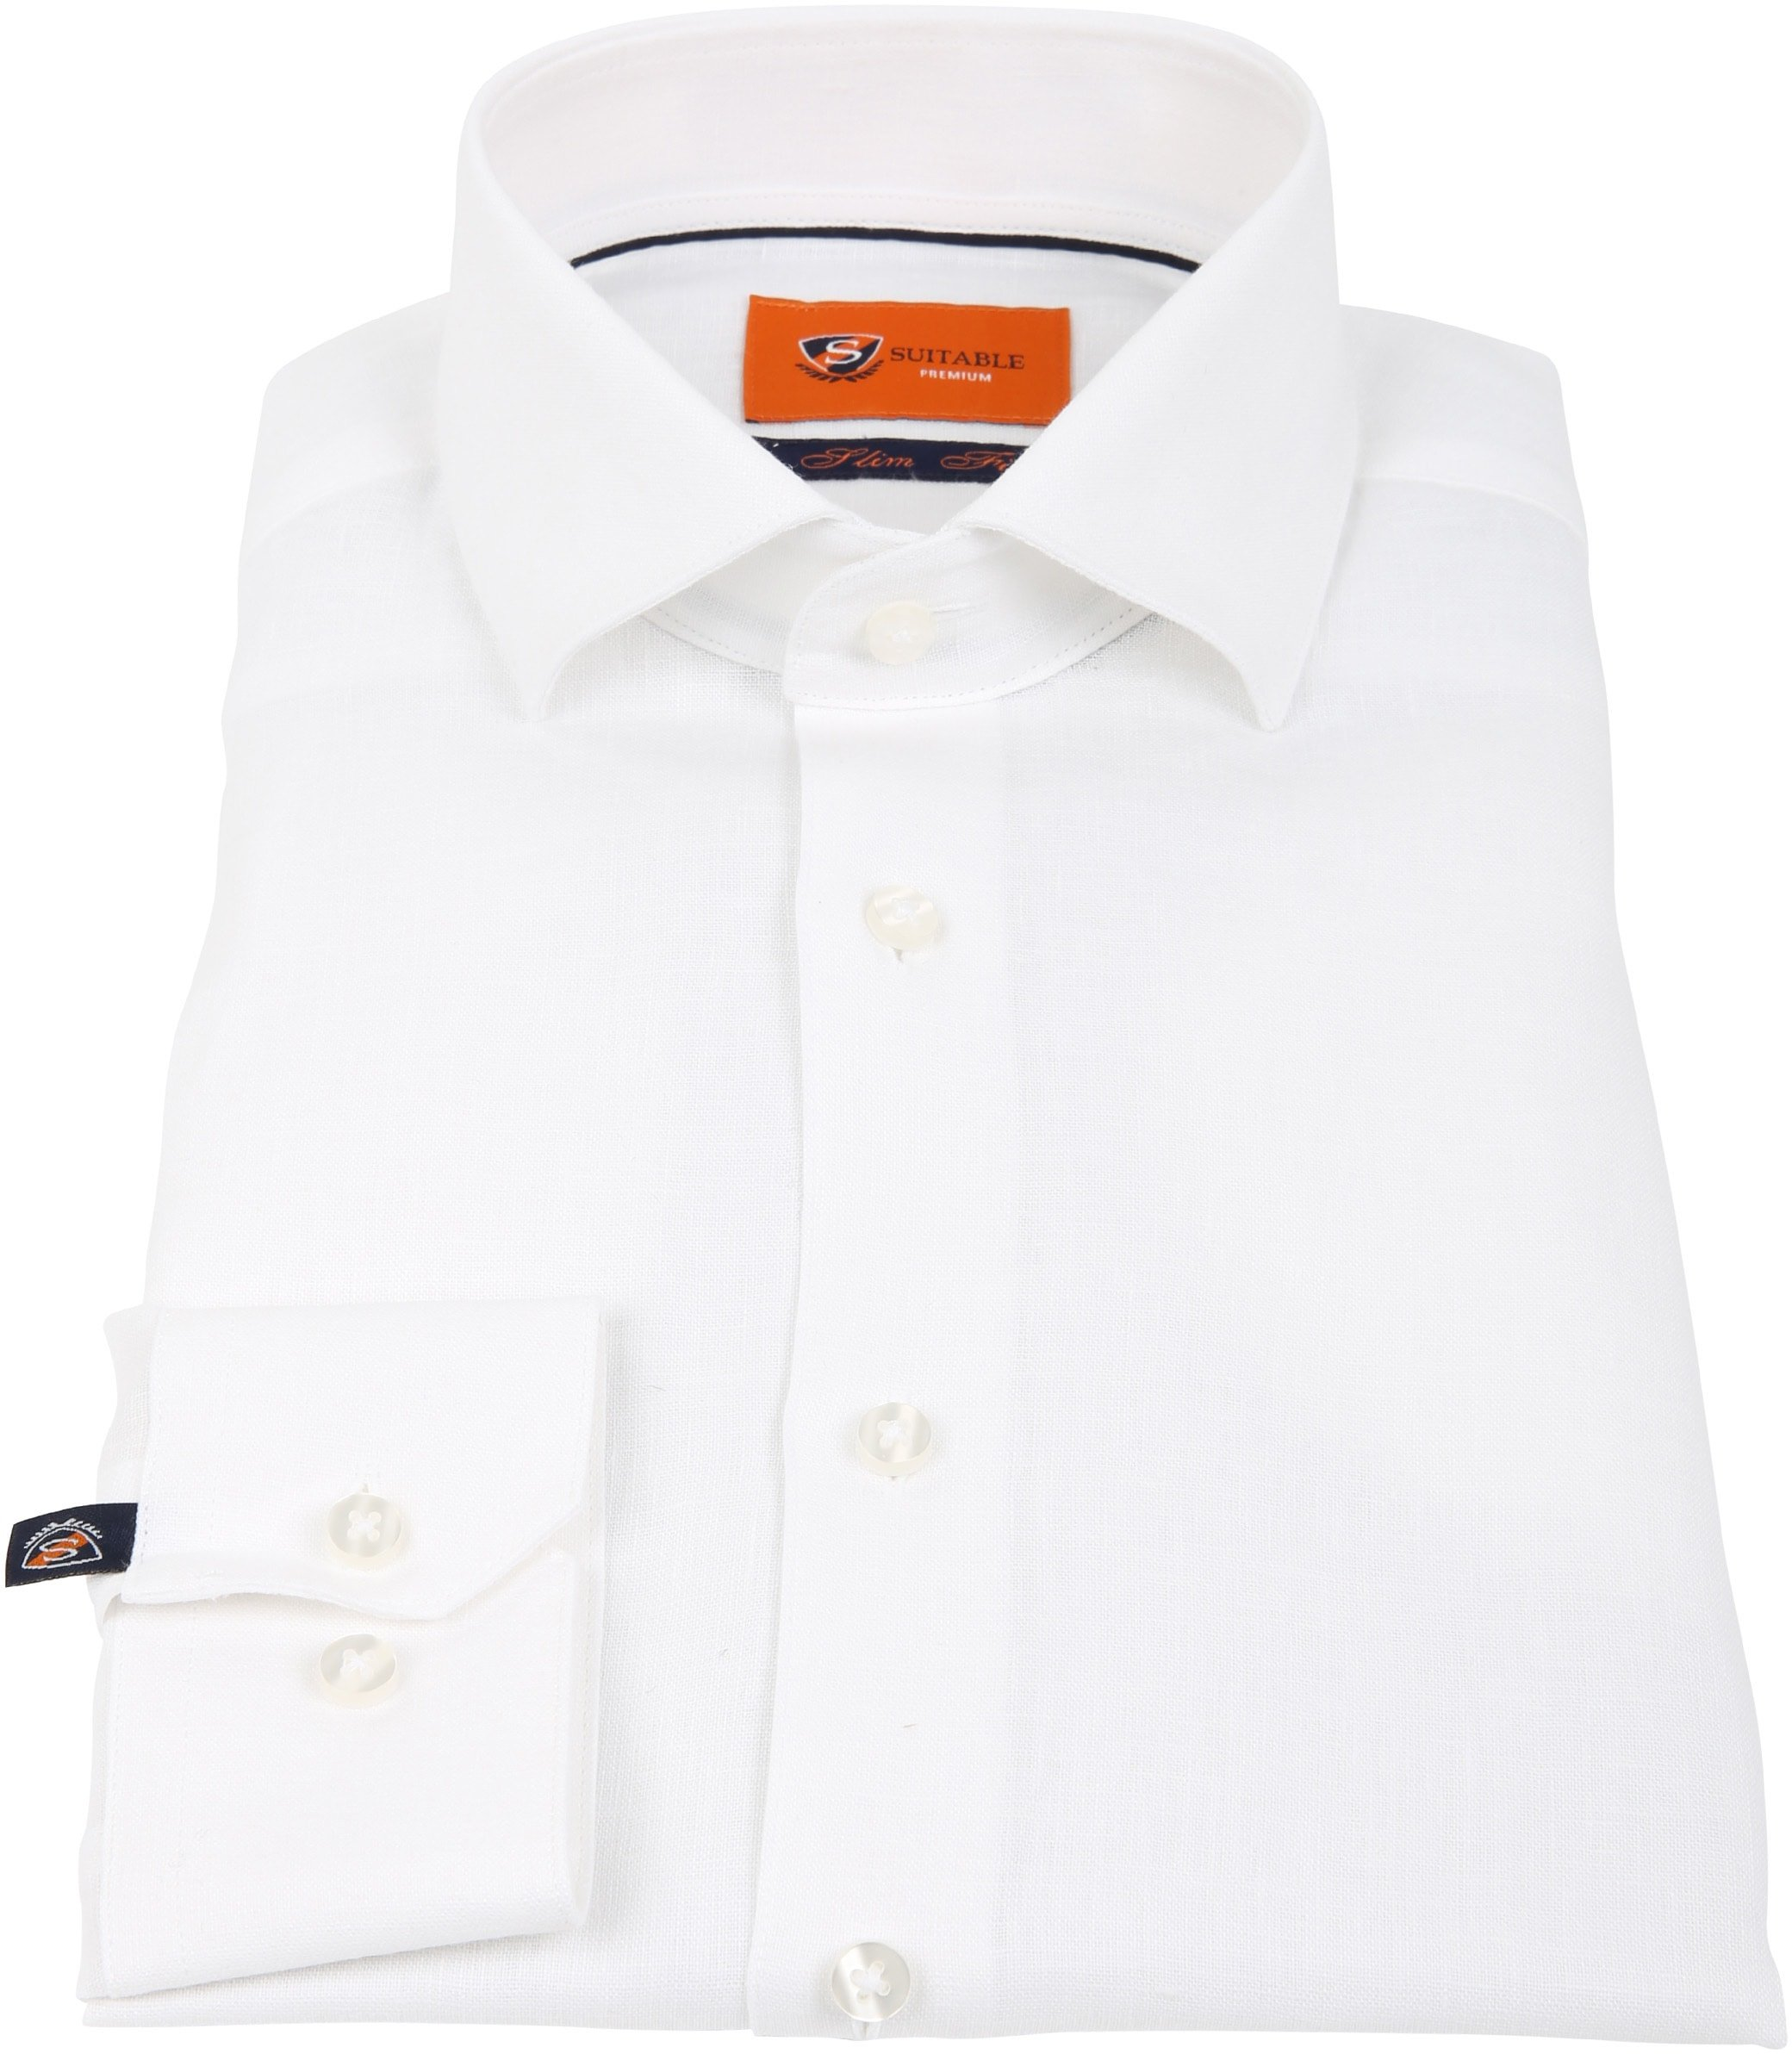 Suitable Shirt Linen White D81-13 foto 2